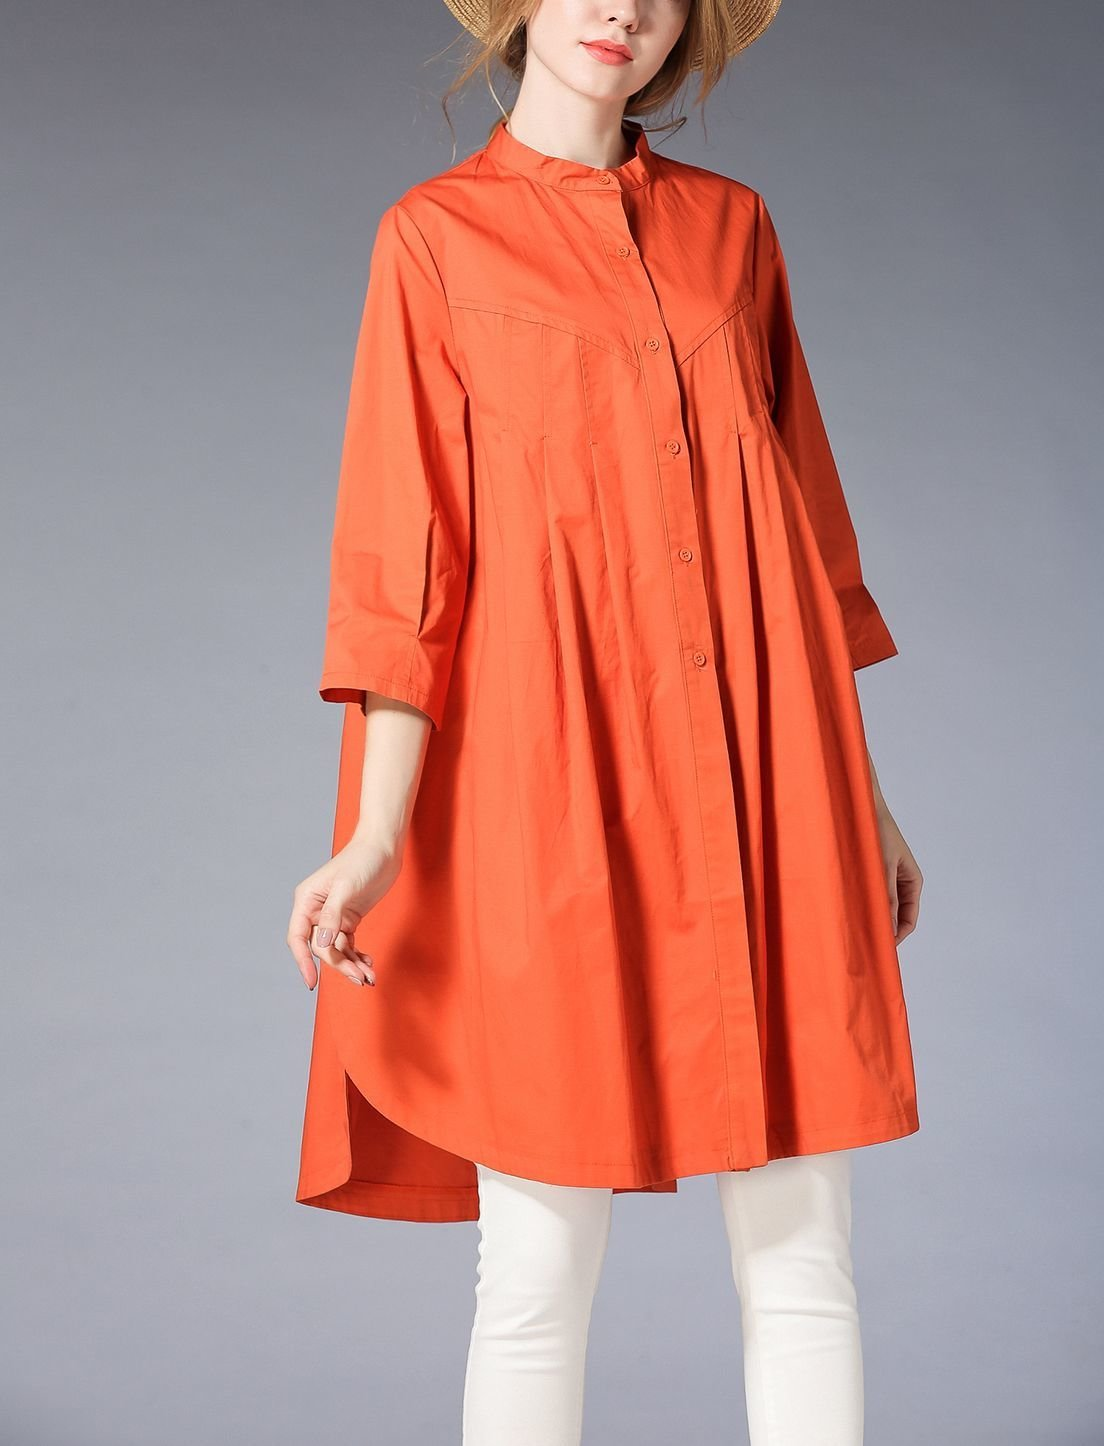 Tent Dress Top with Front Pleats